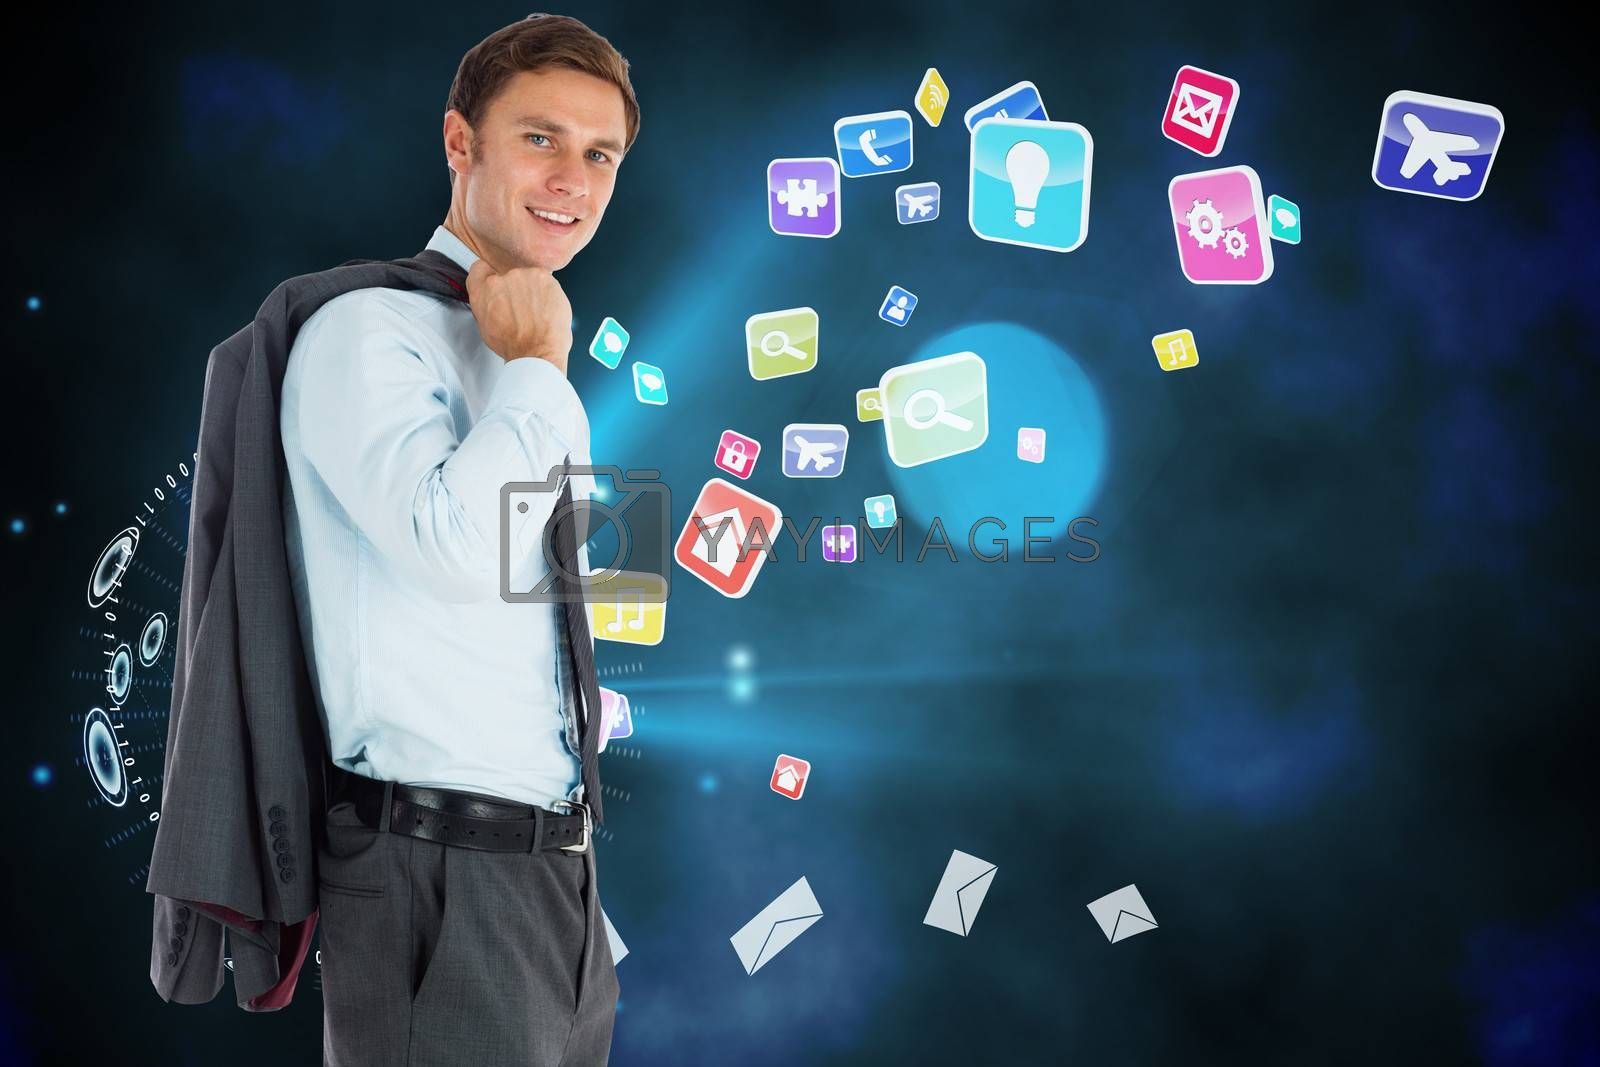 Smiling businessman holding his jacket against global communication background